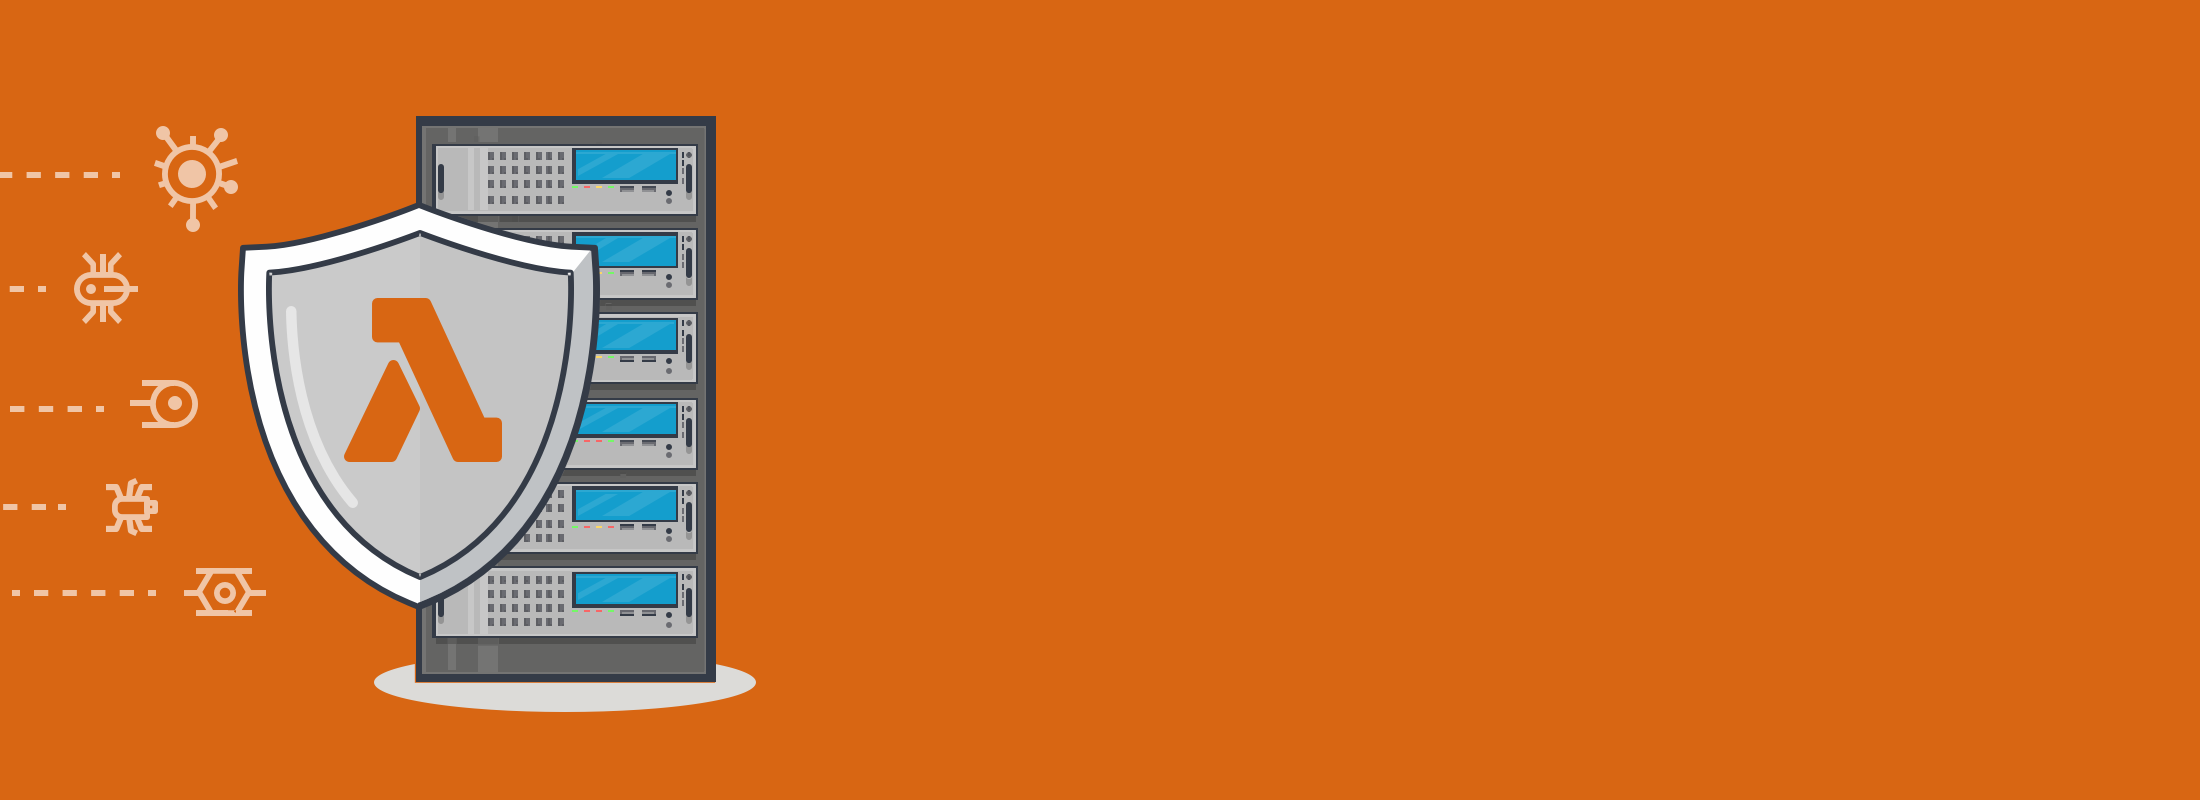 Header Small Image Scanning an AWS S3 Bucket for Viruses, Malware & other Malicious Files